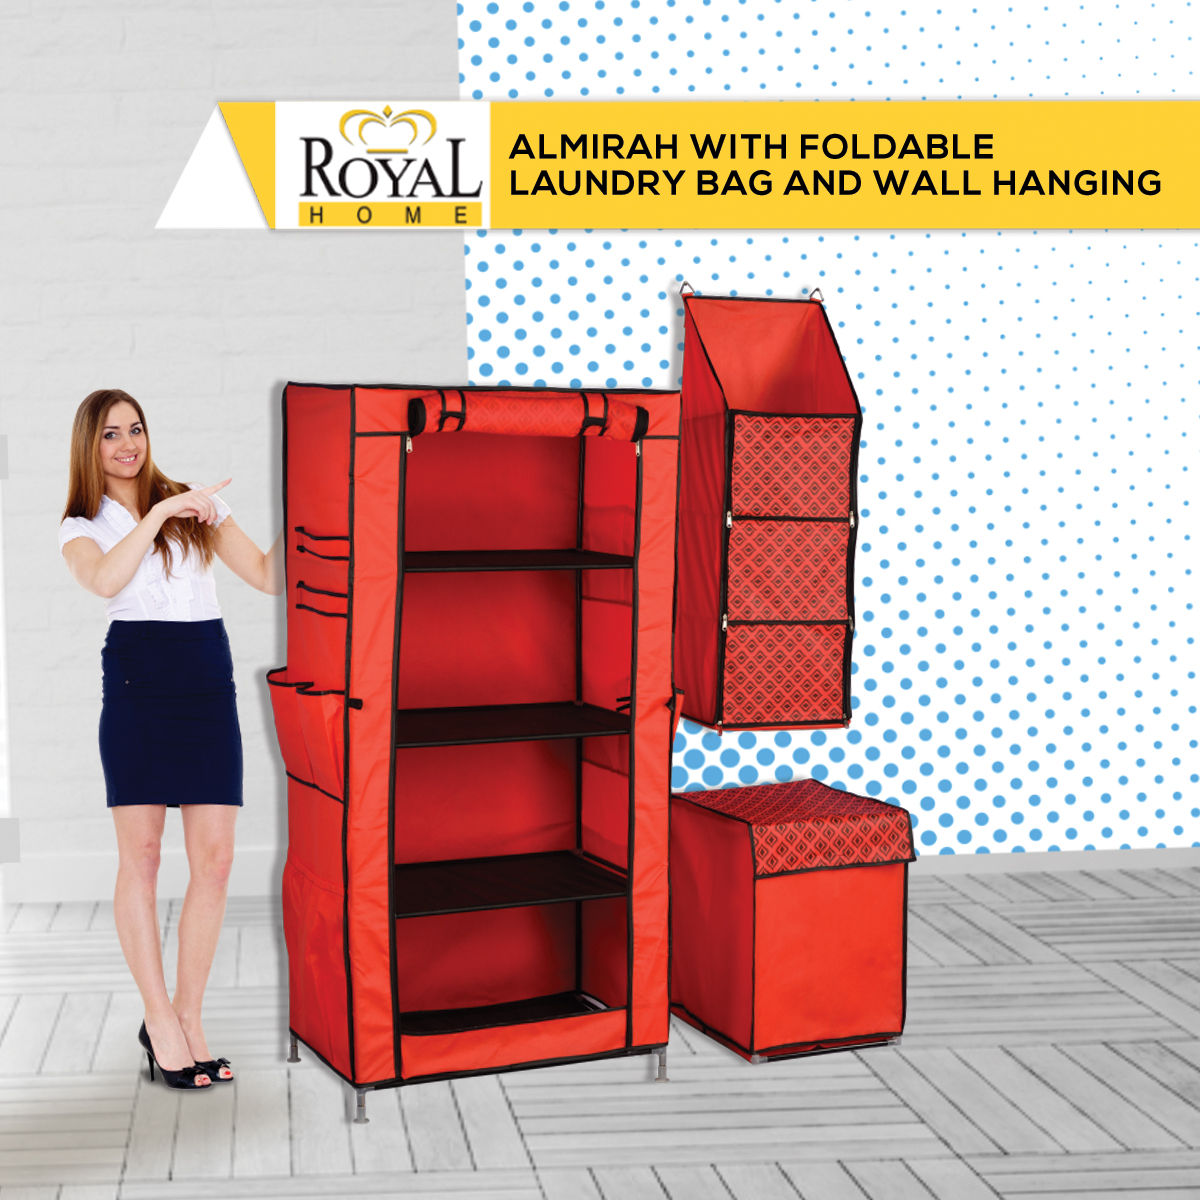 Buy Royal Home Almirah With Foldable Laundry Bag And Wall Hanging